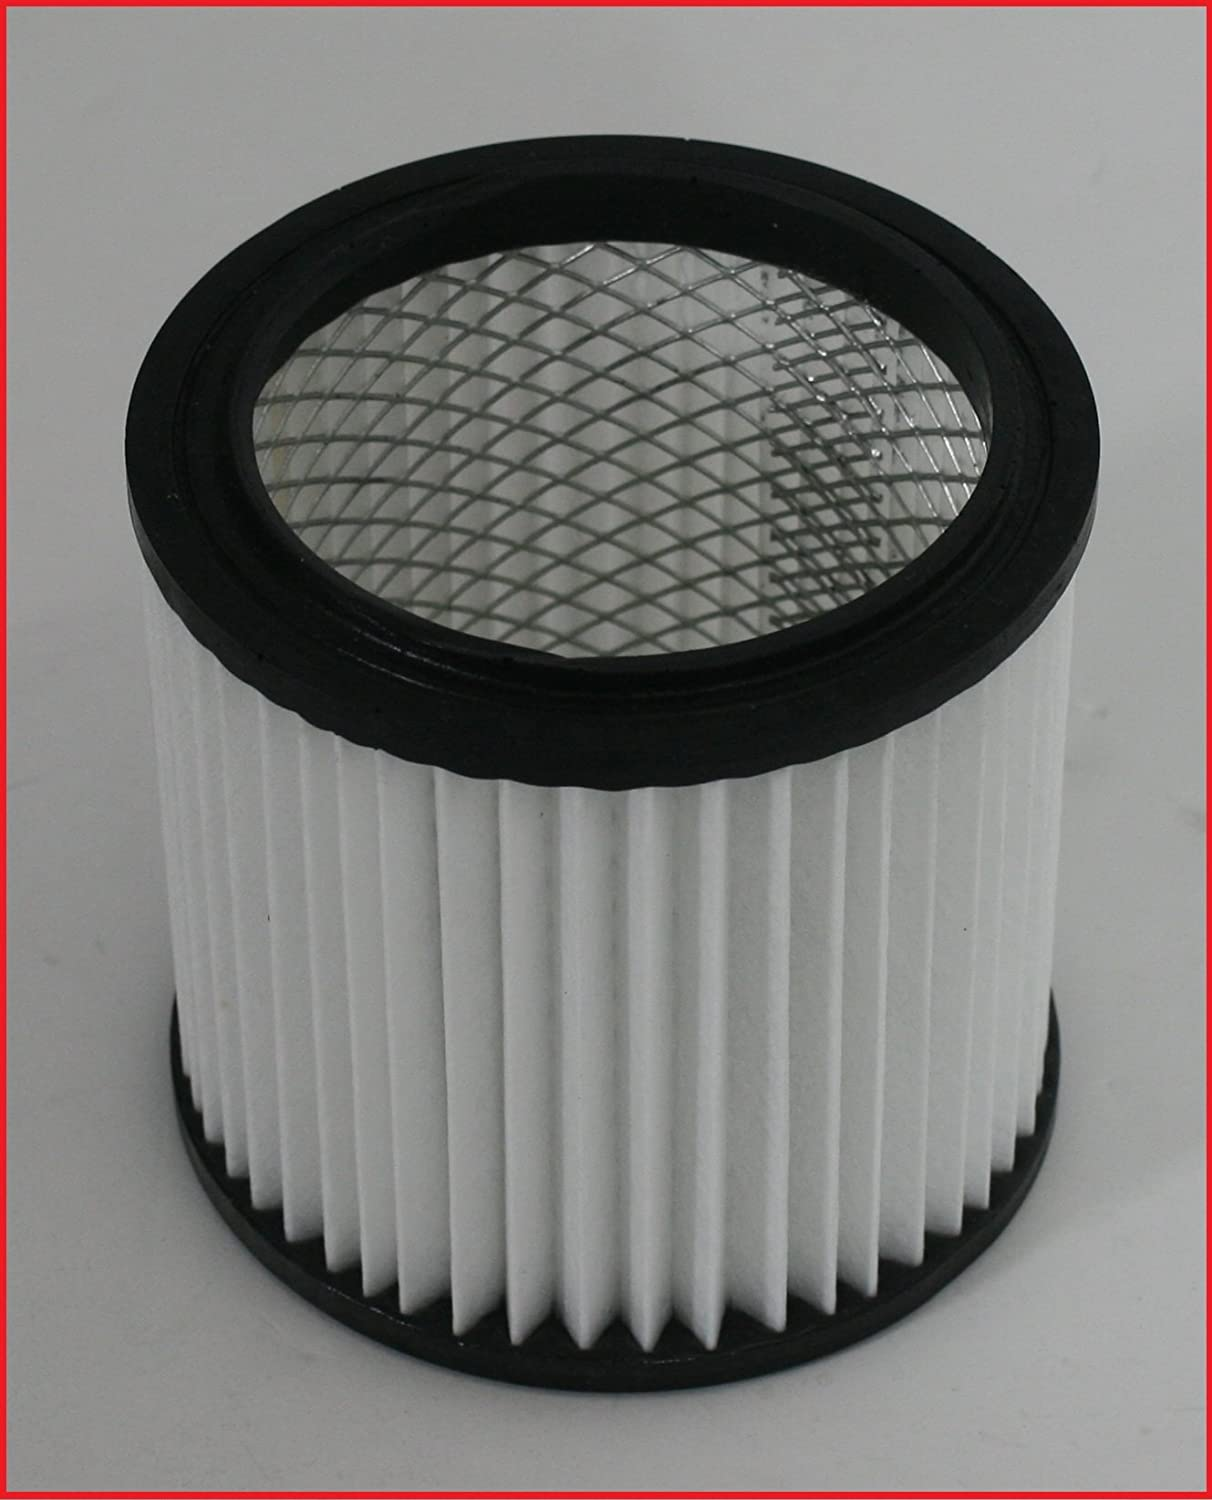 Filter suitable for Lidl Parkside Pas 500 A1 Lidl Ian 53462 fireplace vacuum cleaner/ ash vacuum cleaner, Pleated Filter